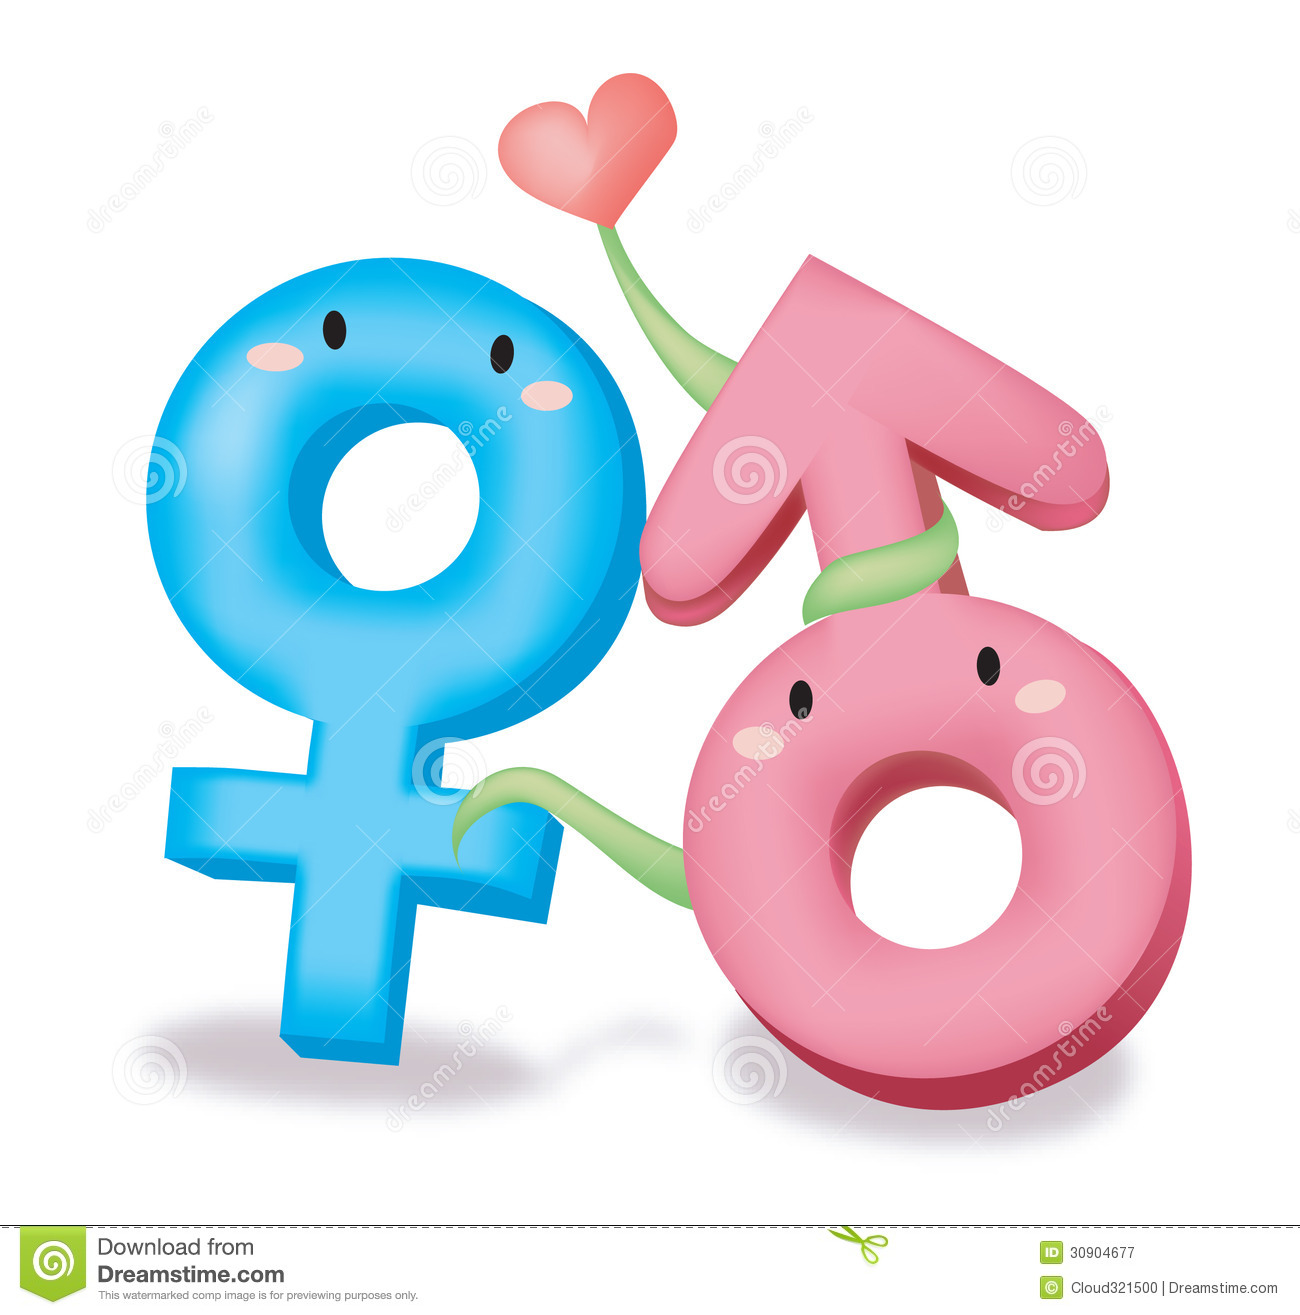 Male Female Symbol Royalty Free Stock Photography - Image: 30904677